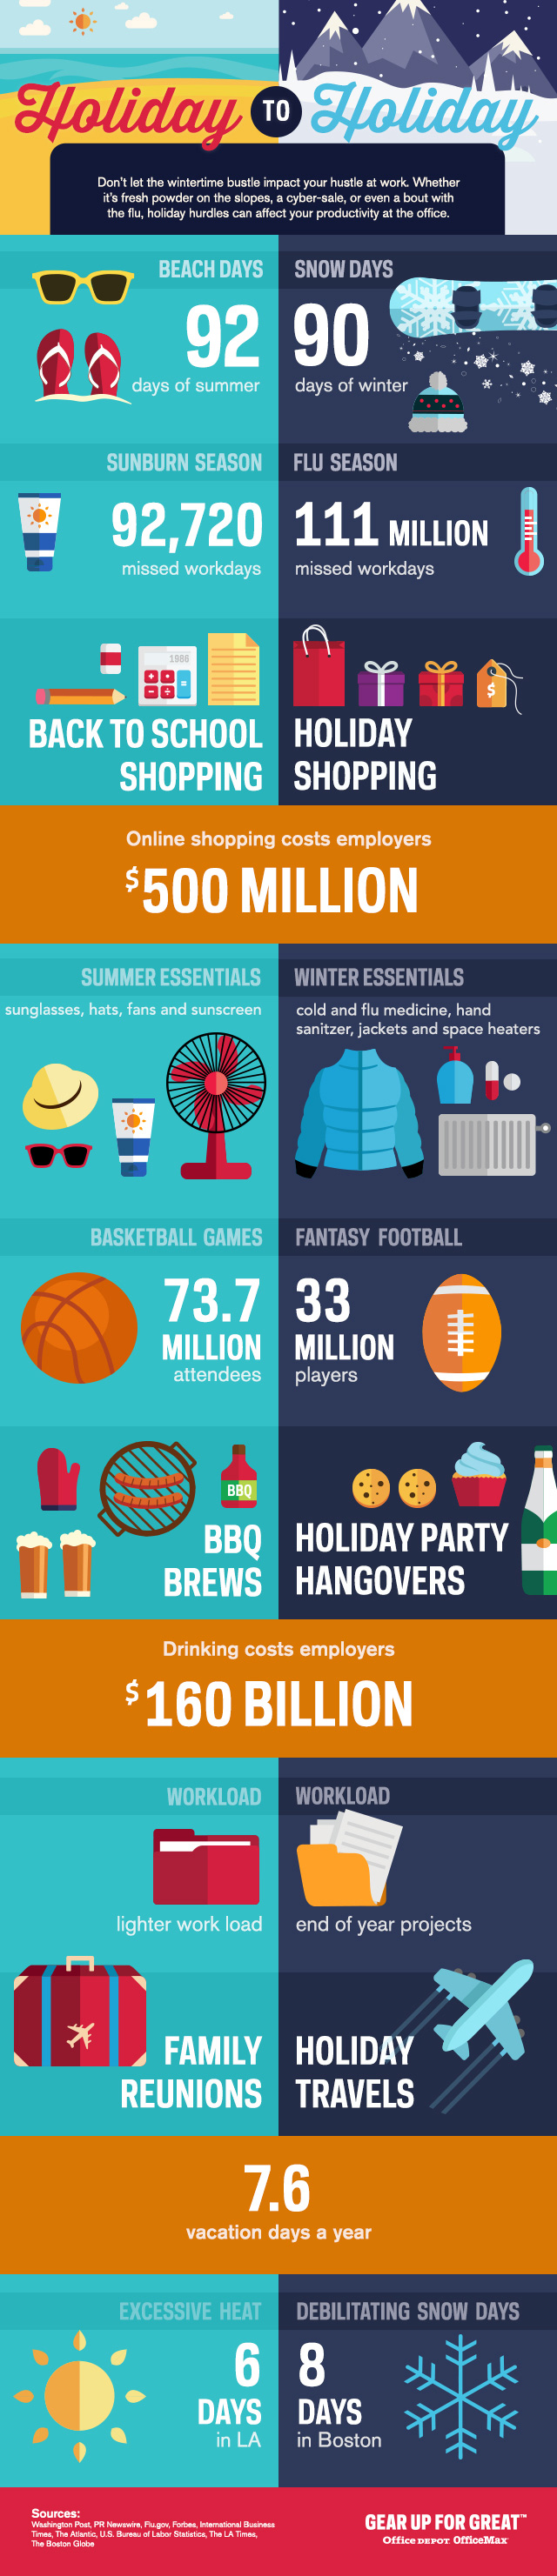 Holiday to Holiday Infographic